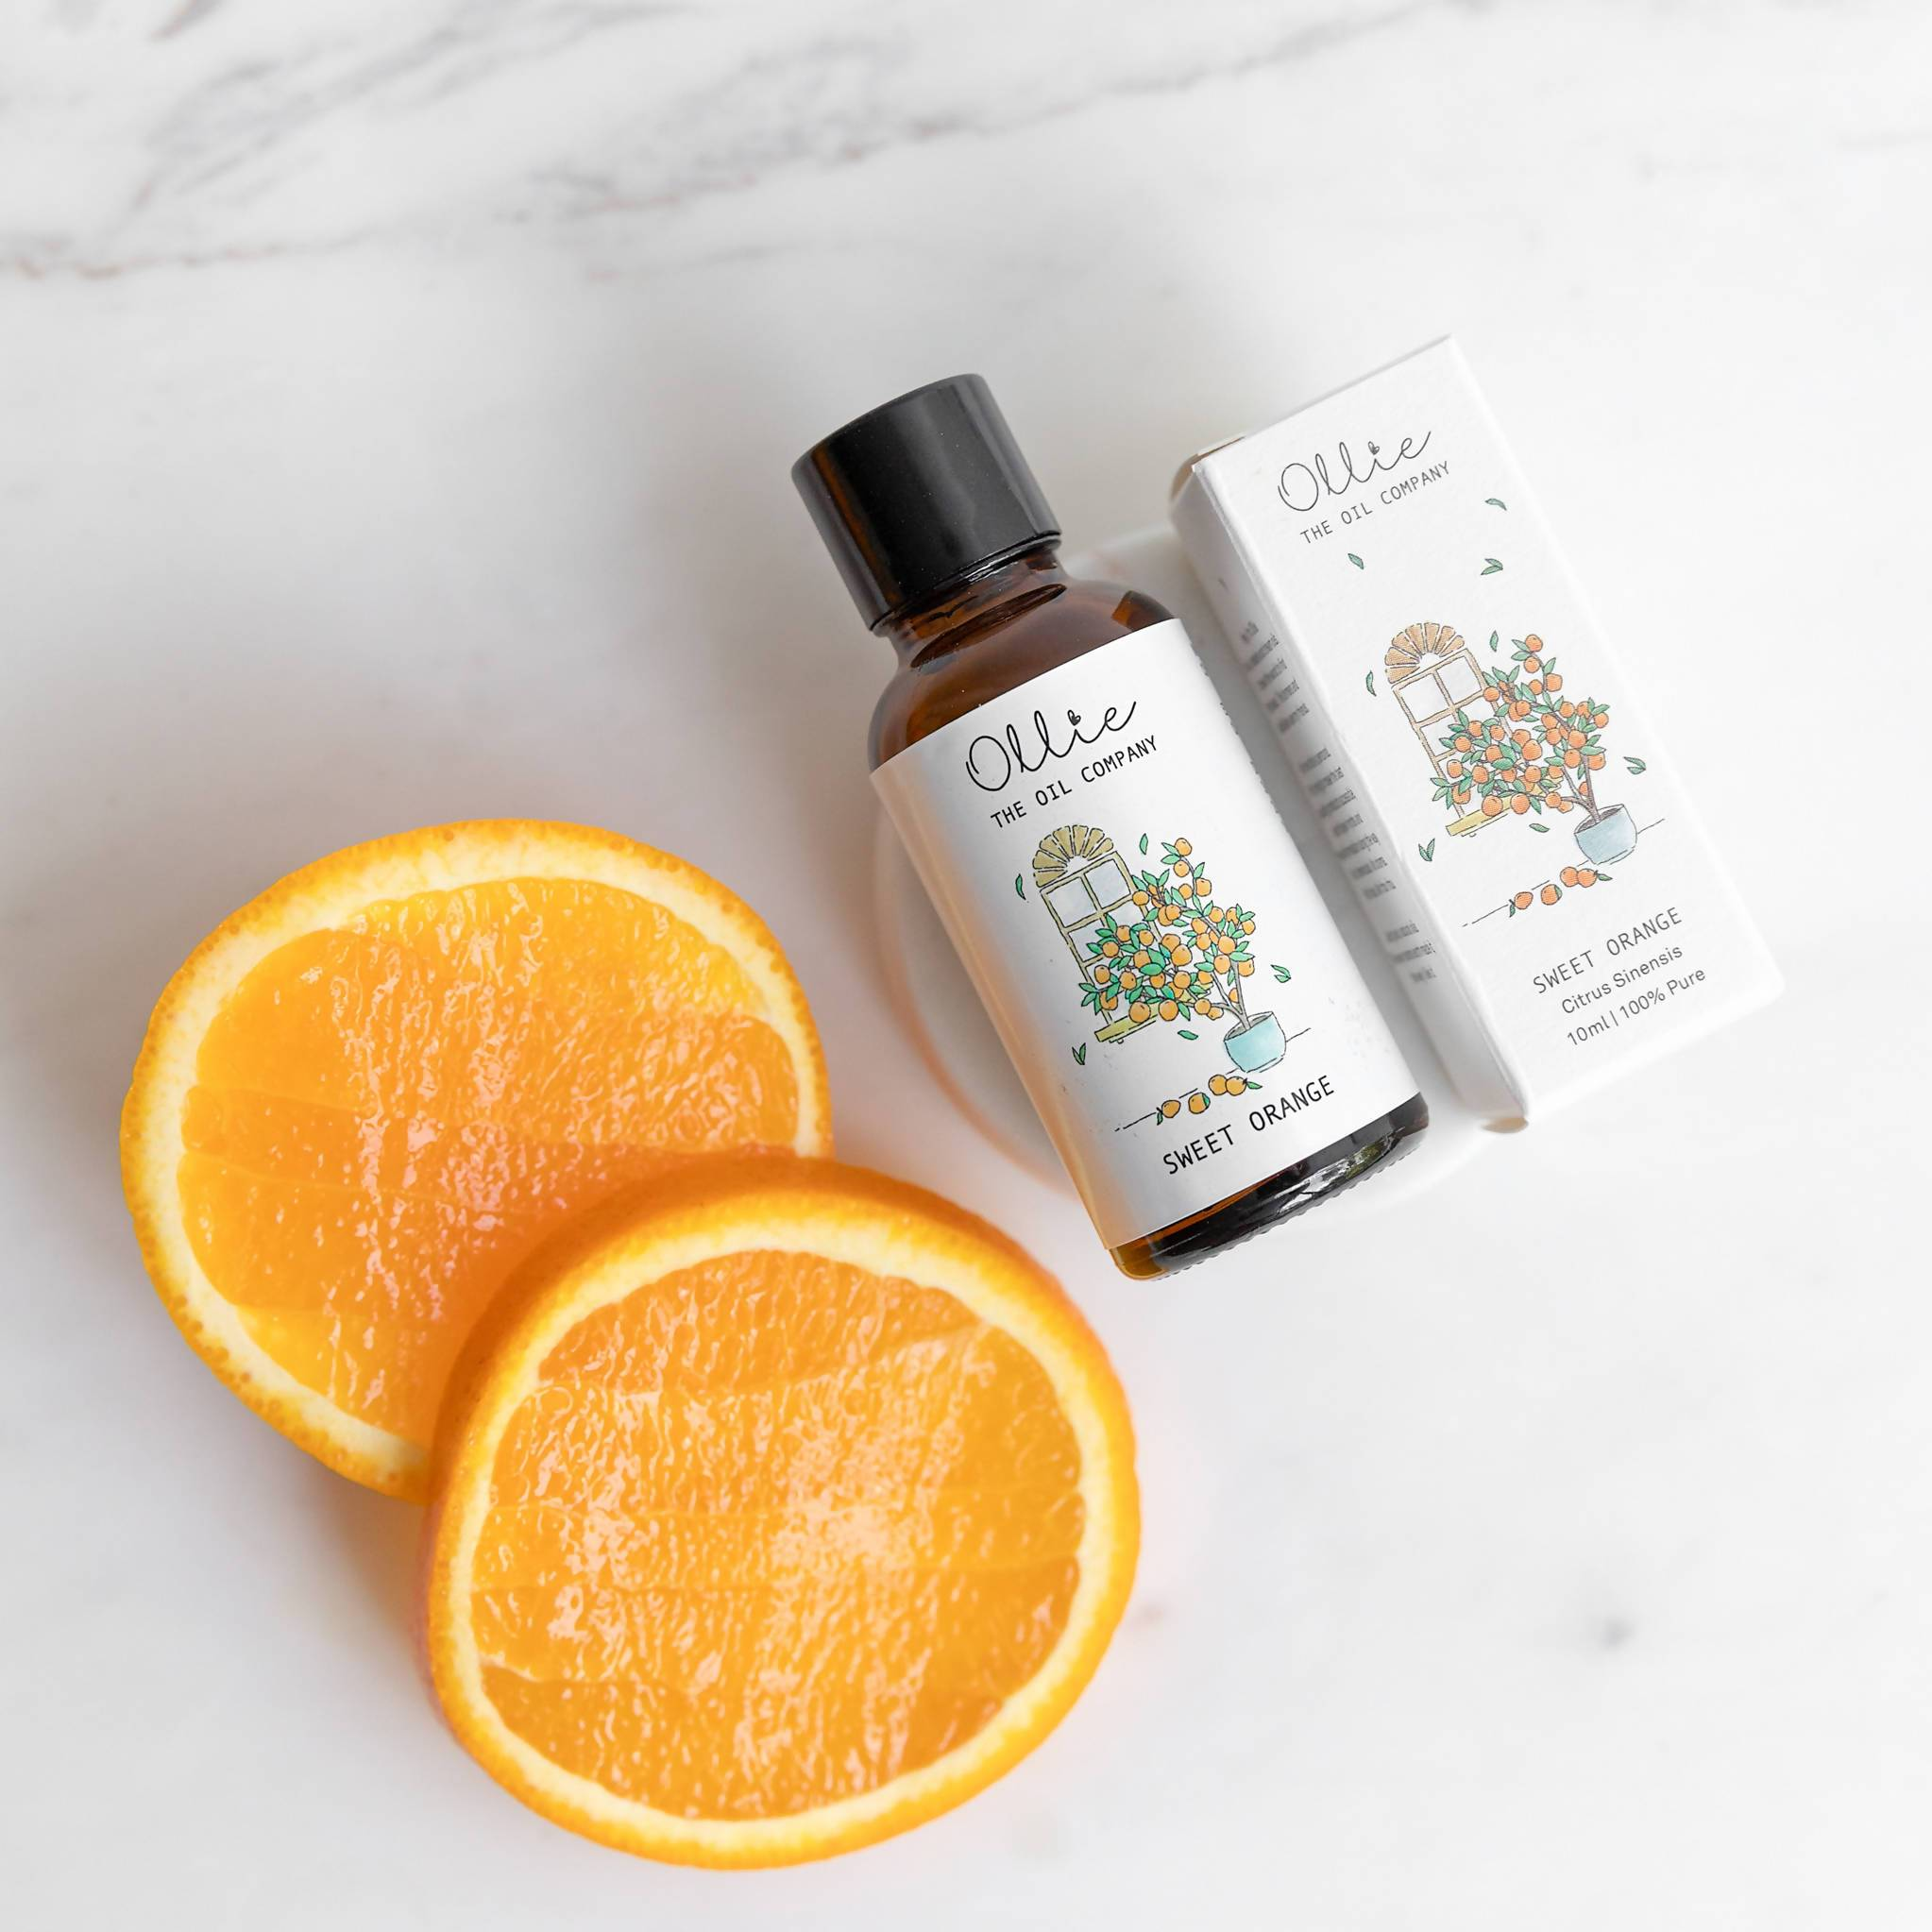 Ollie Sweet Orange Essential Oil - Essential Oils - Ollie - Naiise